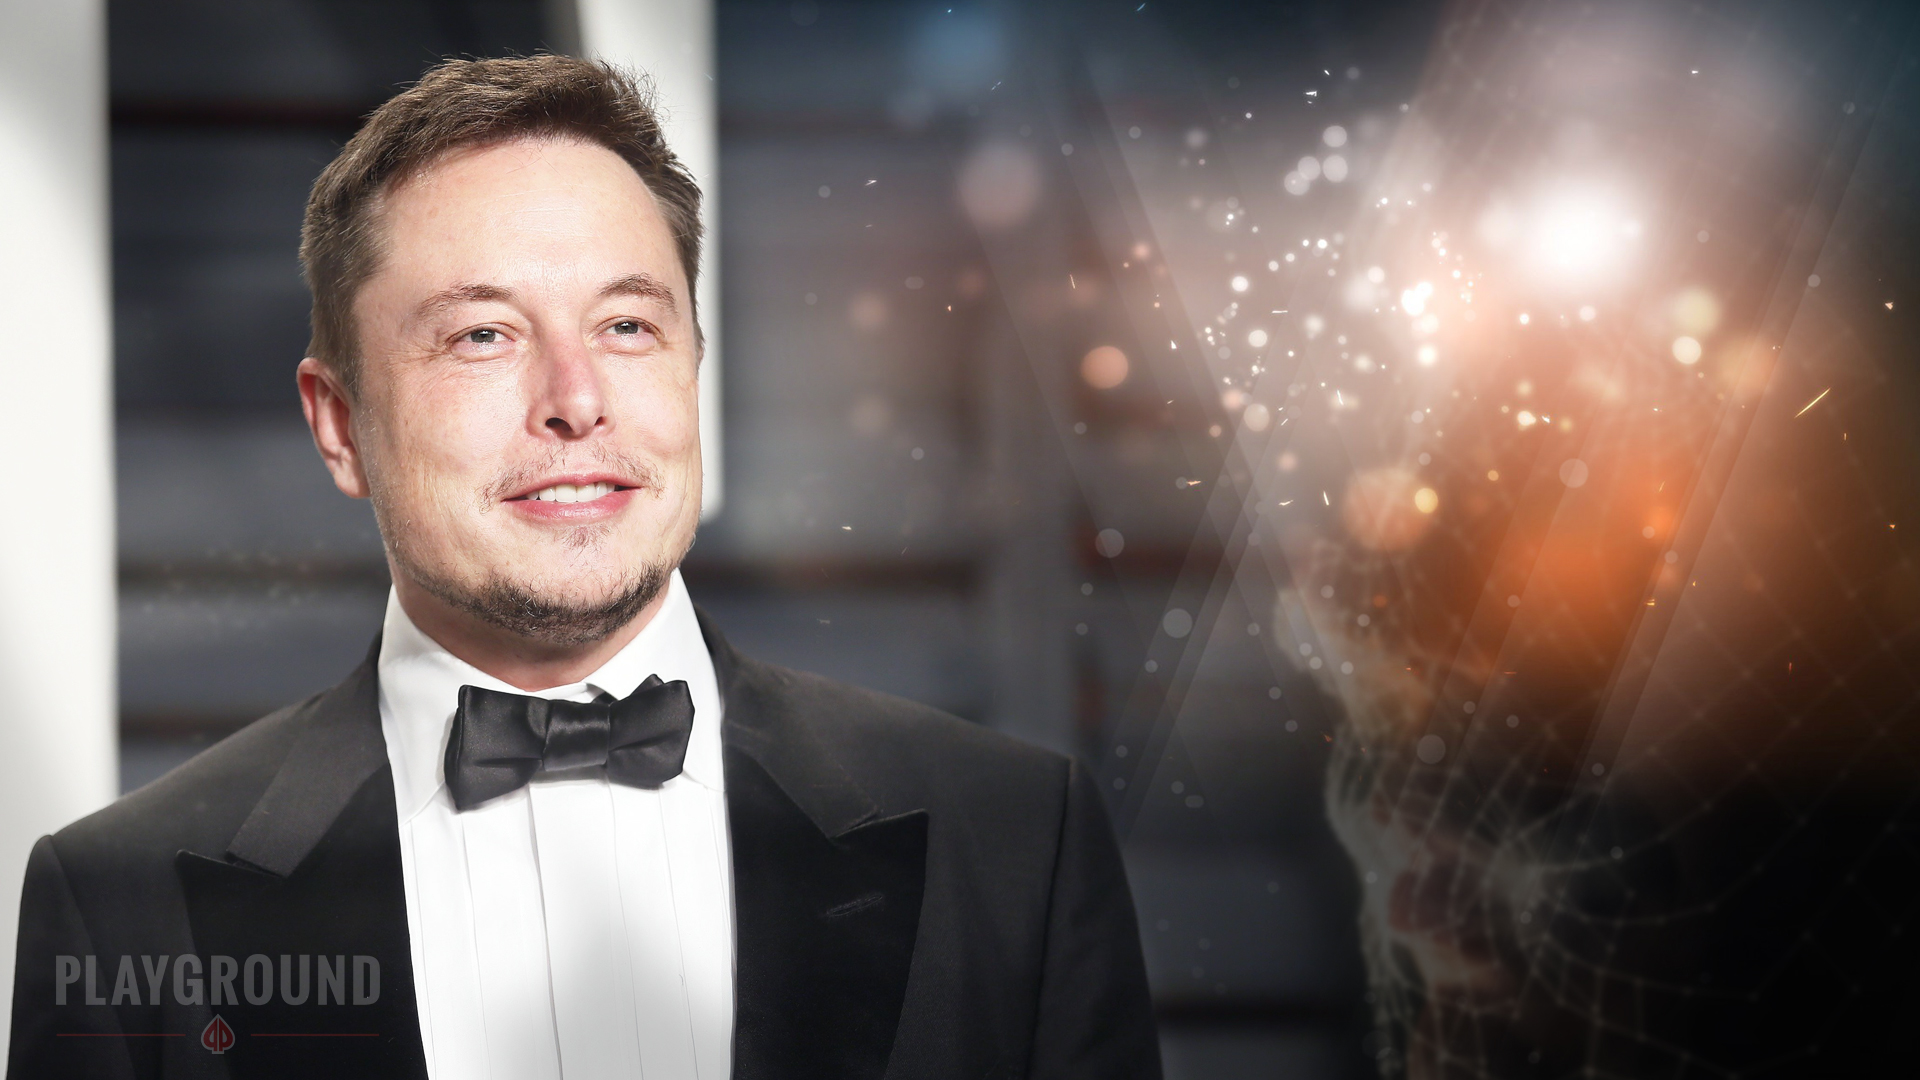 Elon Musk now claims Model S AI system can detect when someone is lying